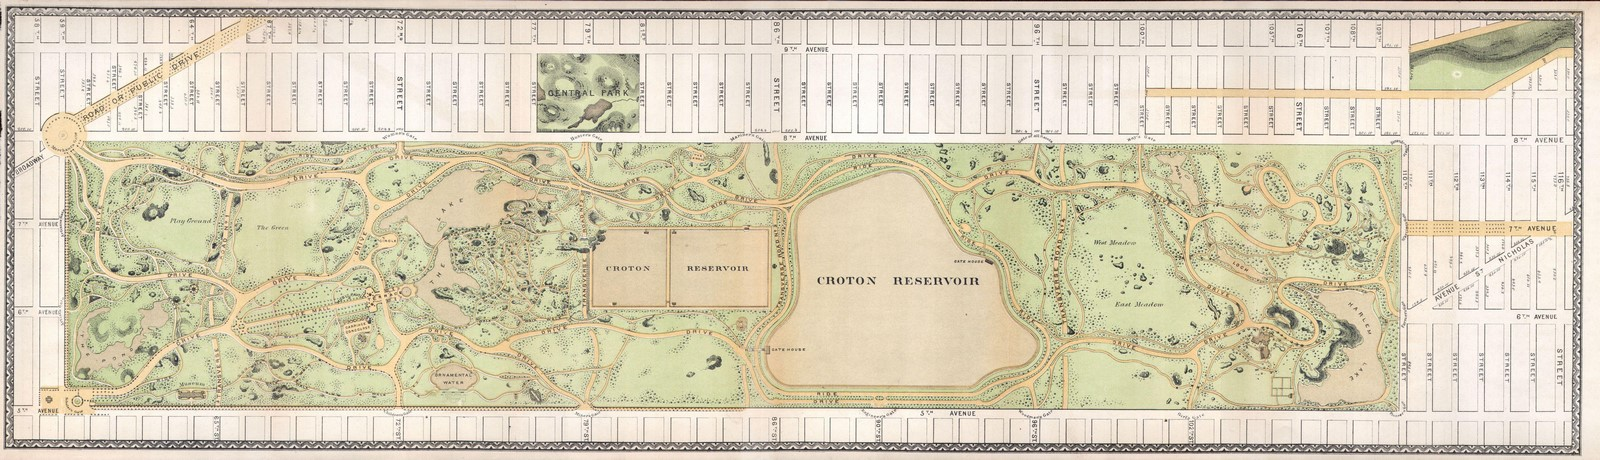 The sustainable and cultural significance of Central Park on New York -Sheet5